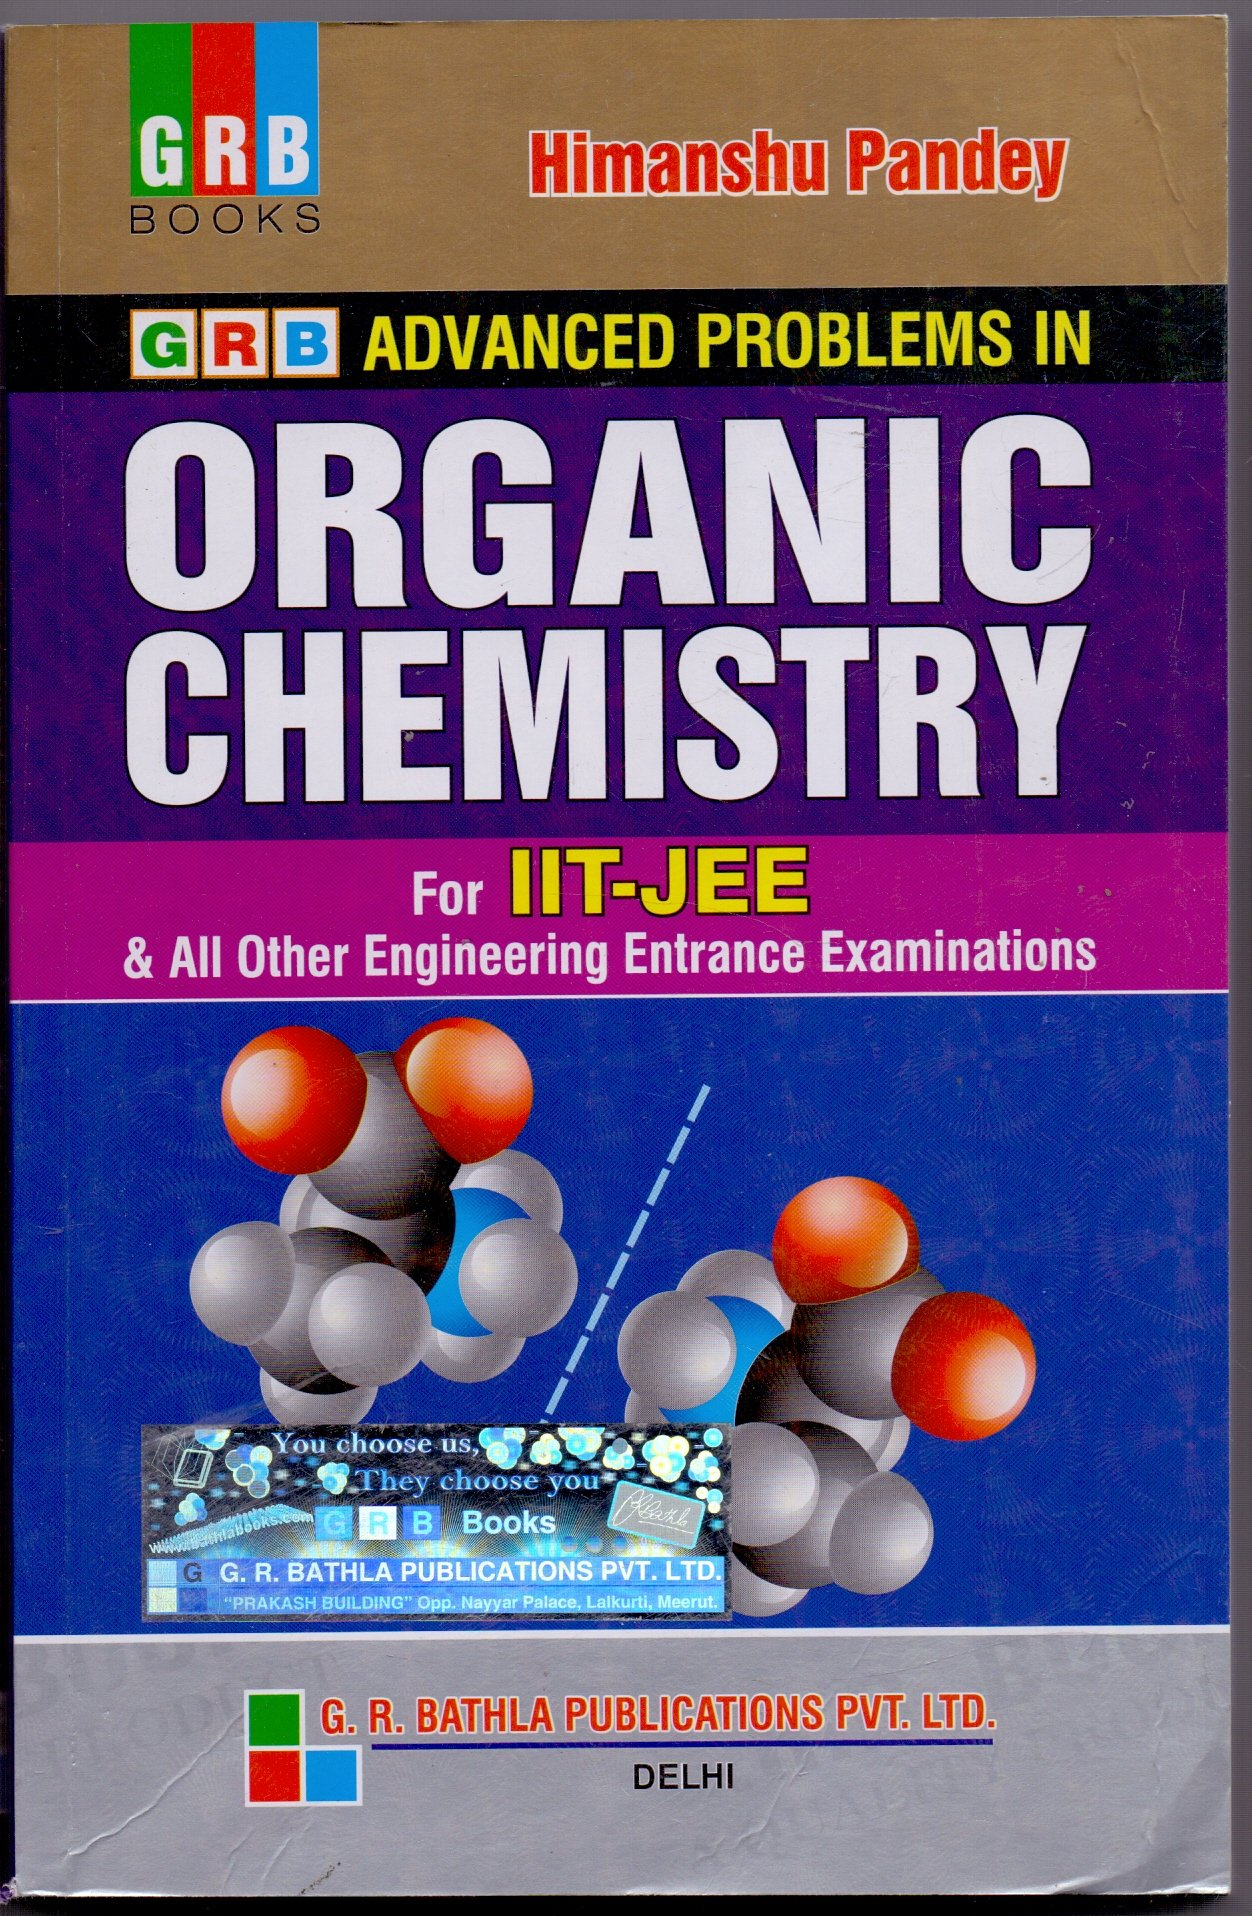 grb advanced organic chemistry solutions himanshu pandey